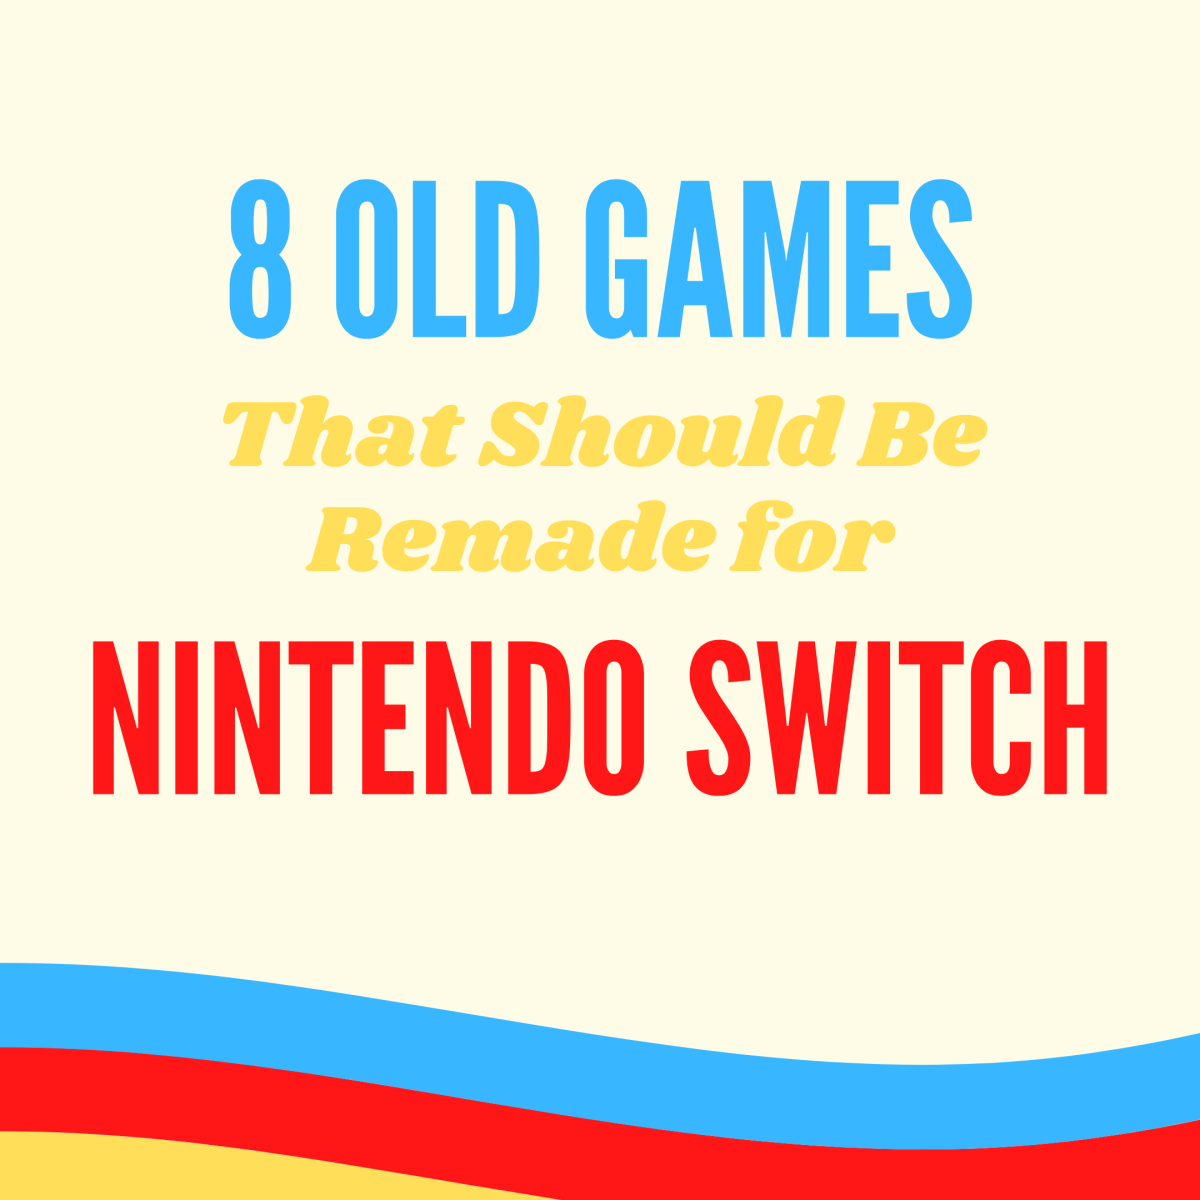 Do you wish these old games were remade for Switch?